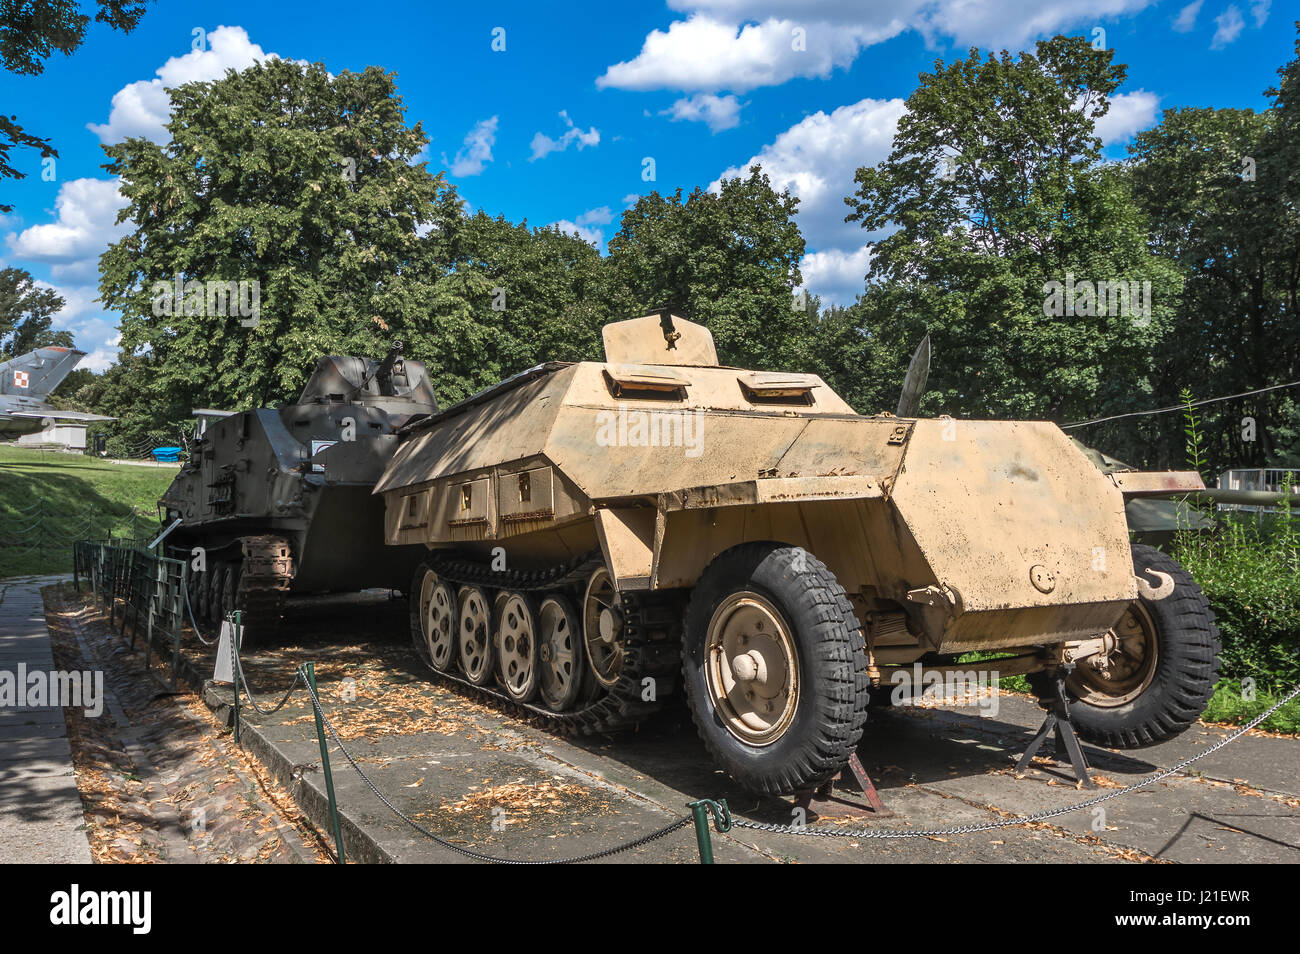 Sd.Kfz.251/1 Ausf. D, German armoured personnel carrier, one of the displays at the Museum of the Polish Army - - Stock Image